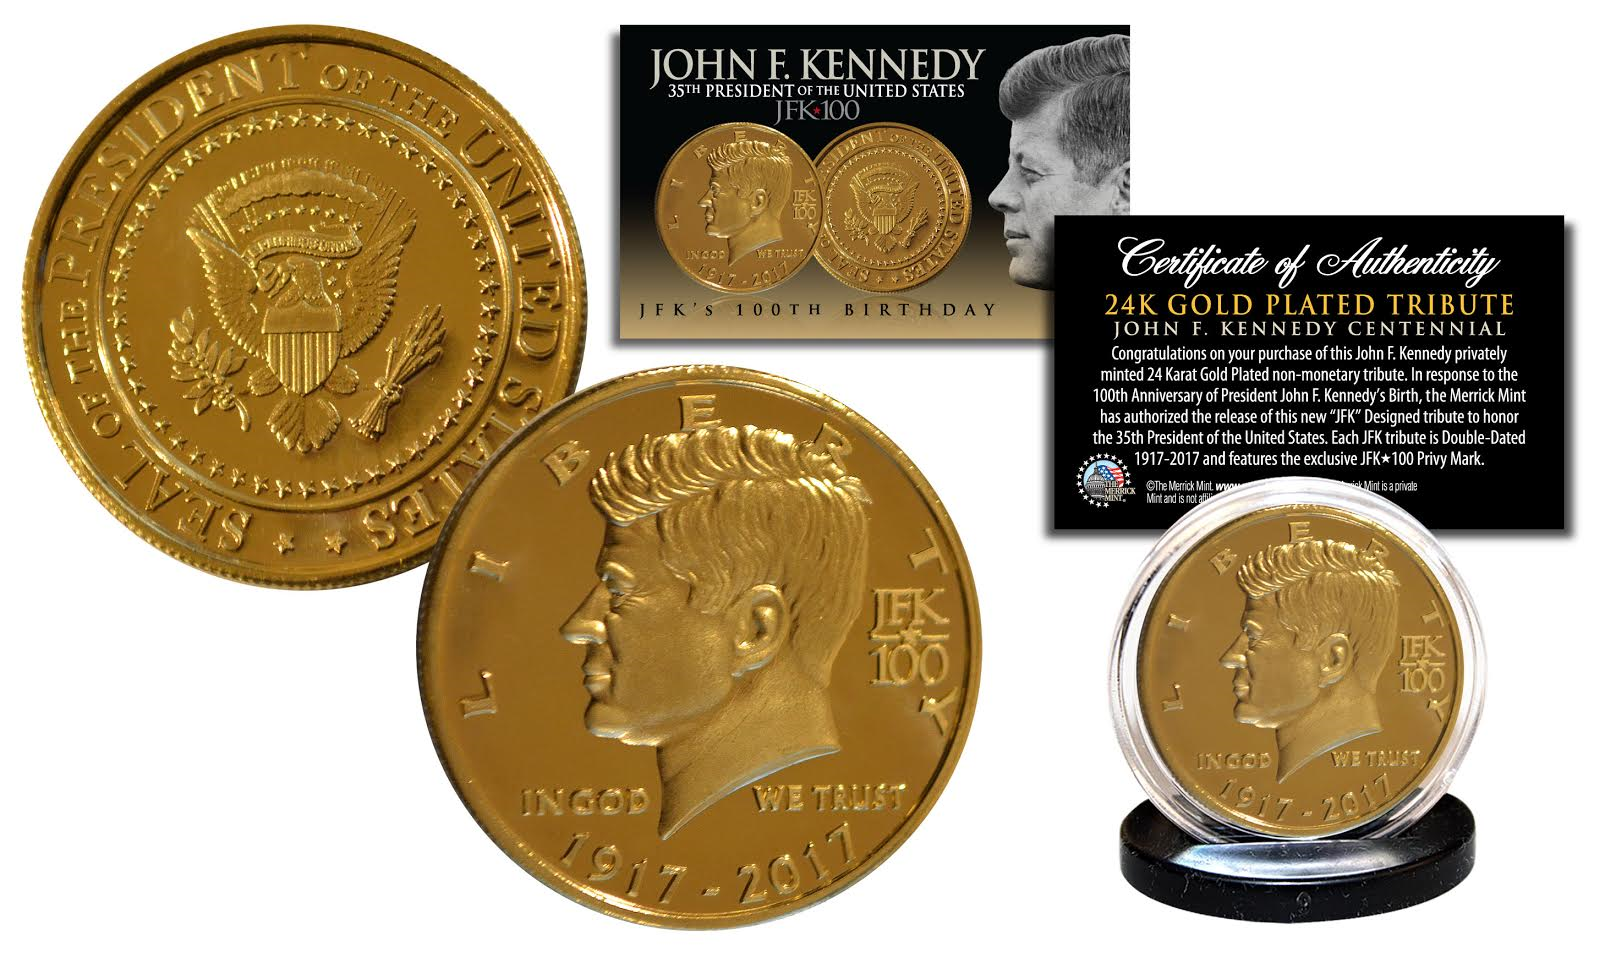 Jfk Kennedy 35th President 100th Birthday Celebration 24k